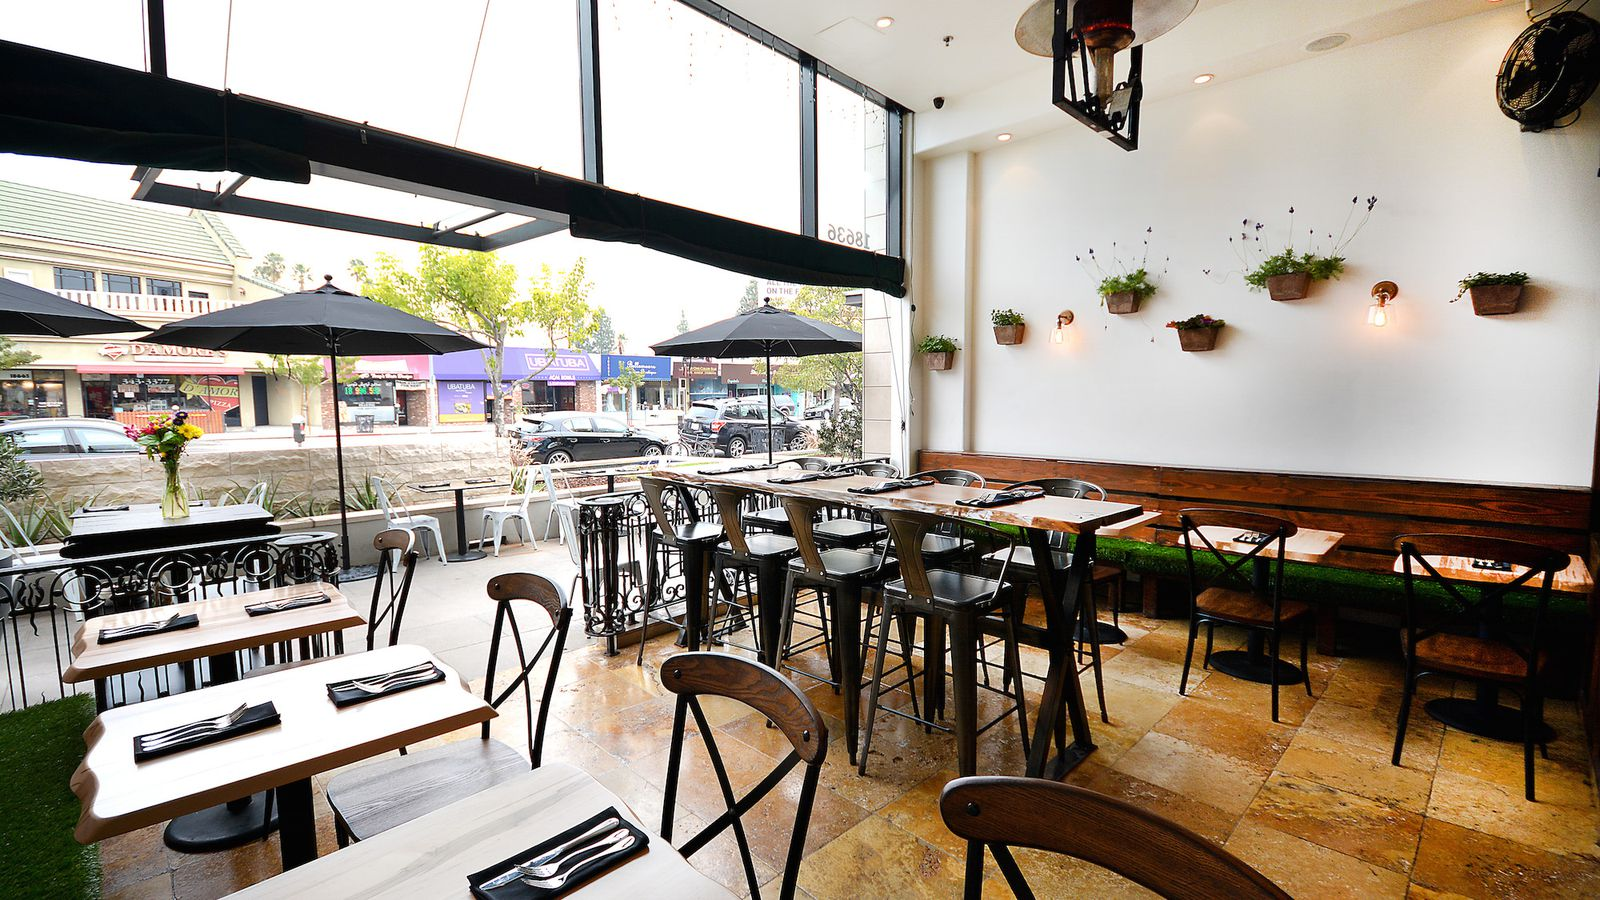 118 degrees is the raw vegan gluten free restaurant